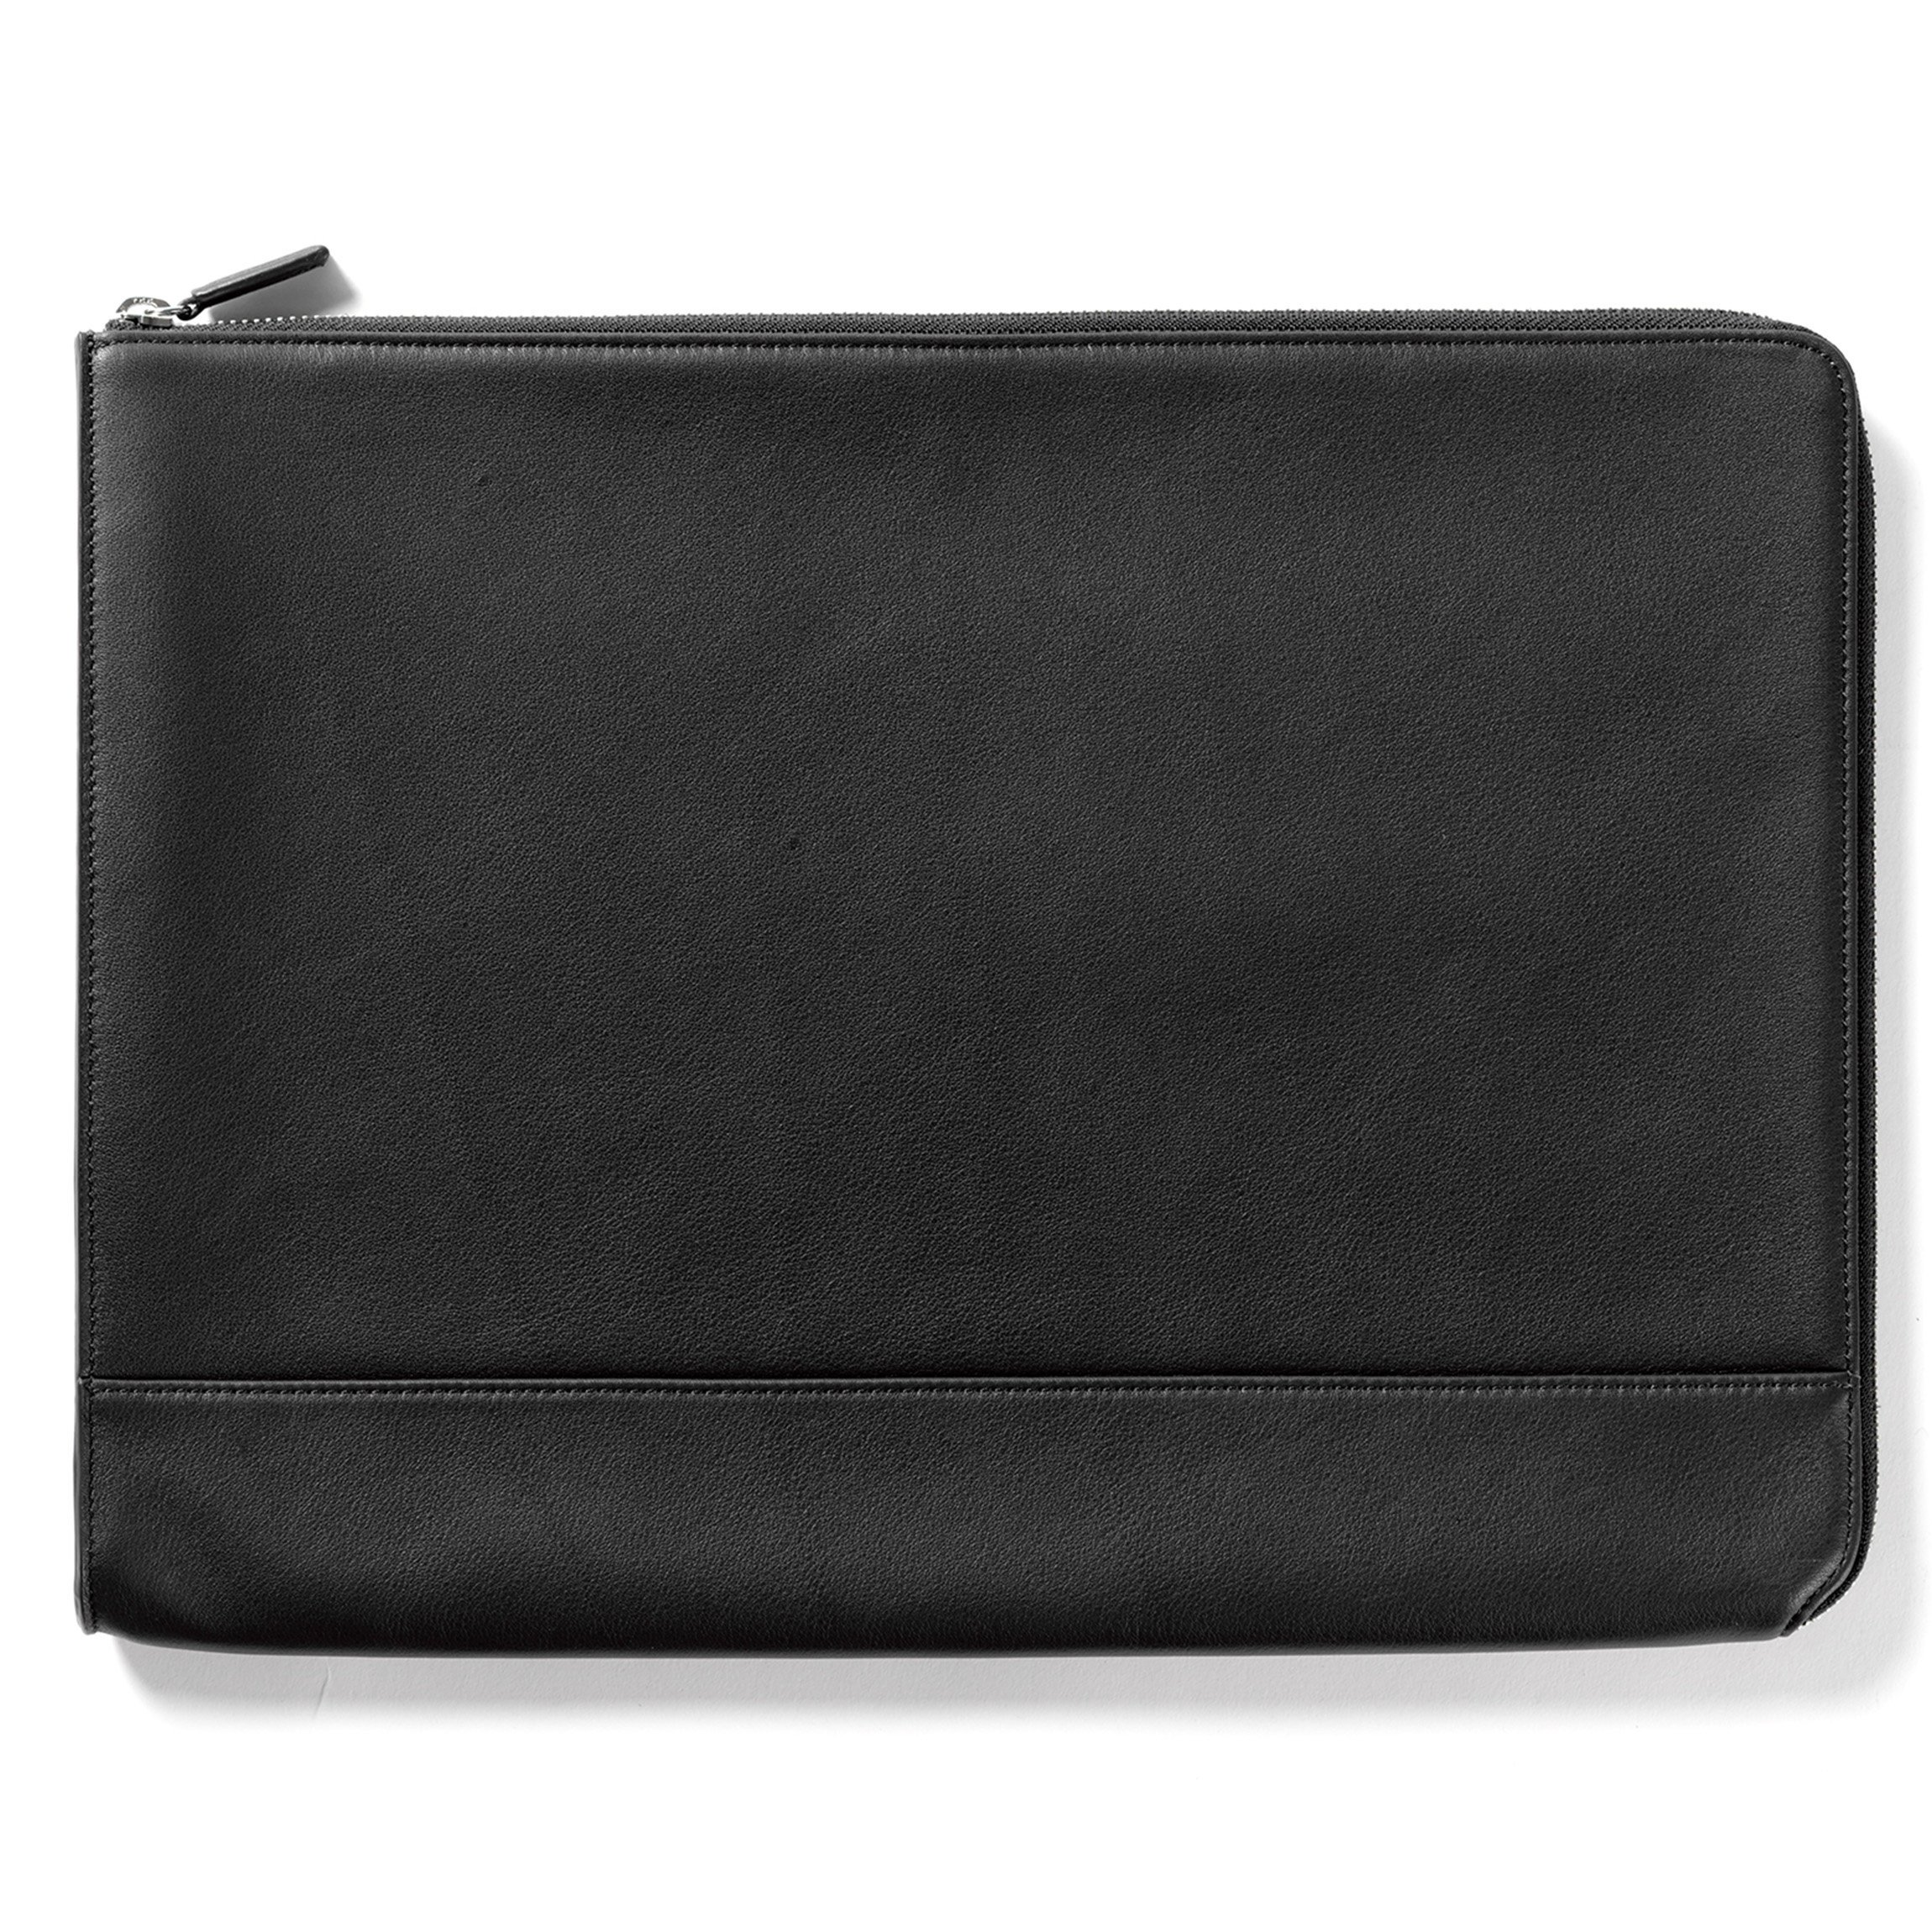 Leatherolgy Zippered Document Holder with Interior Pocket for Tablet - Full Grain Leather - Black Onyx (black)